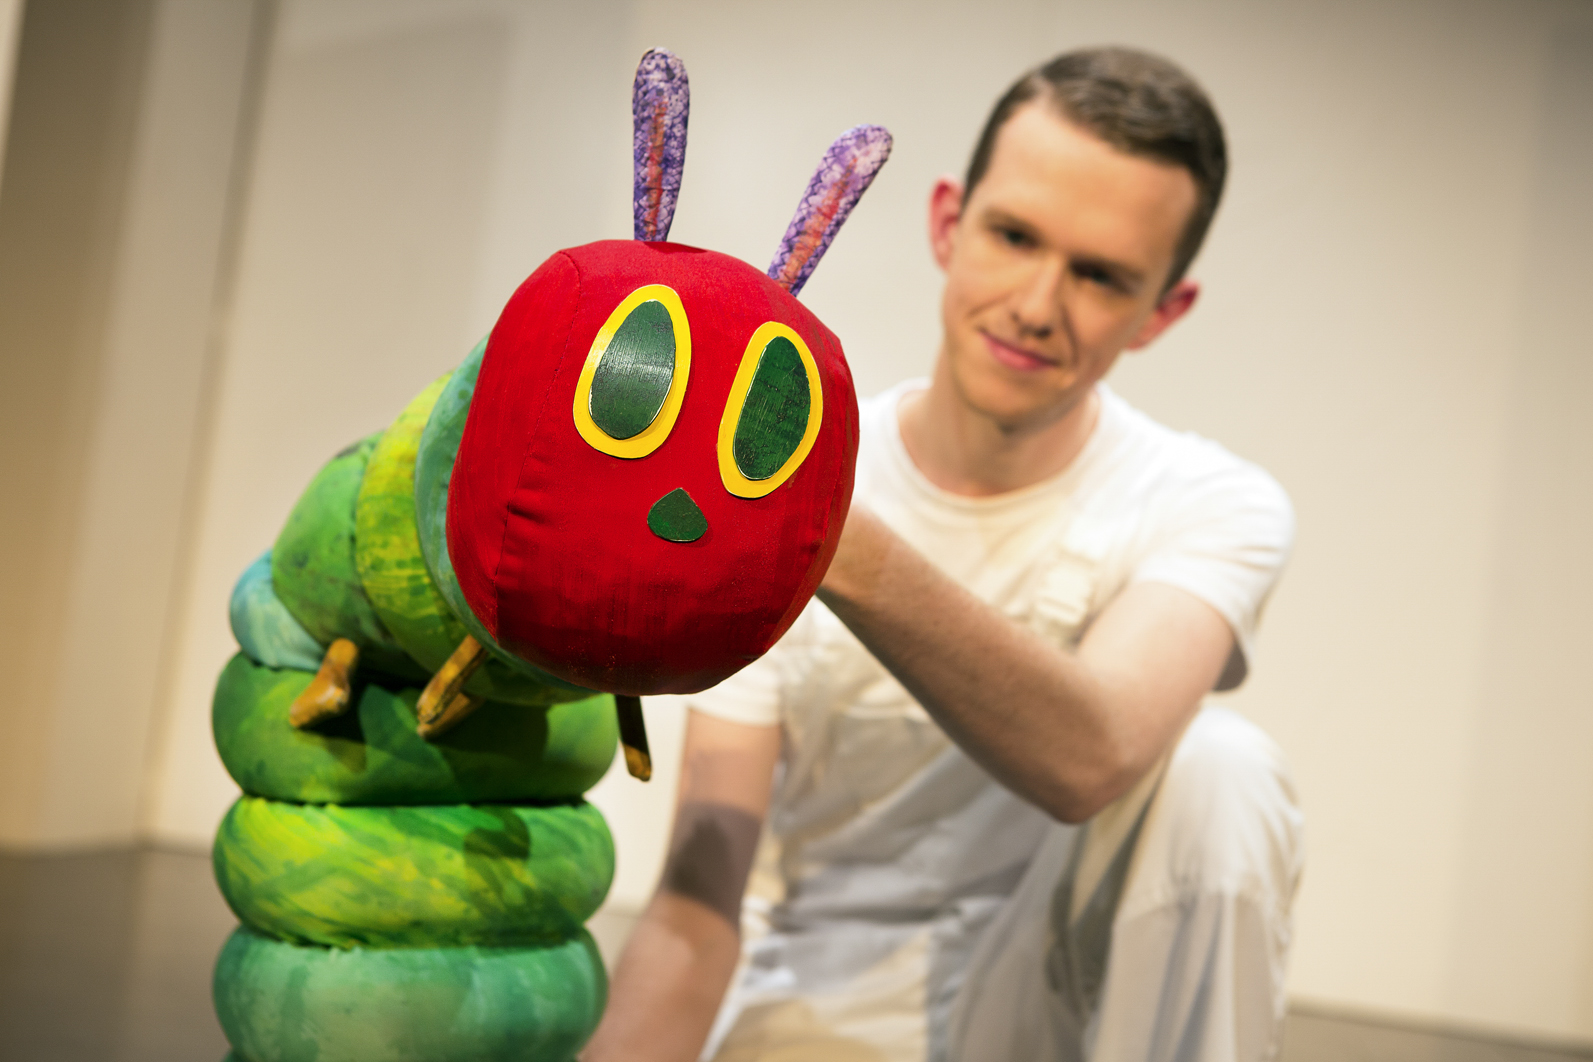 The Very Hungry Caterpillar Show comes to Stourport this month. Picture by: Pamela Raith Photography